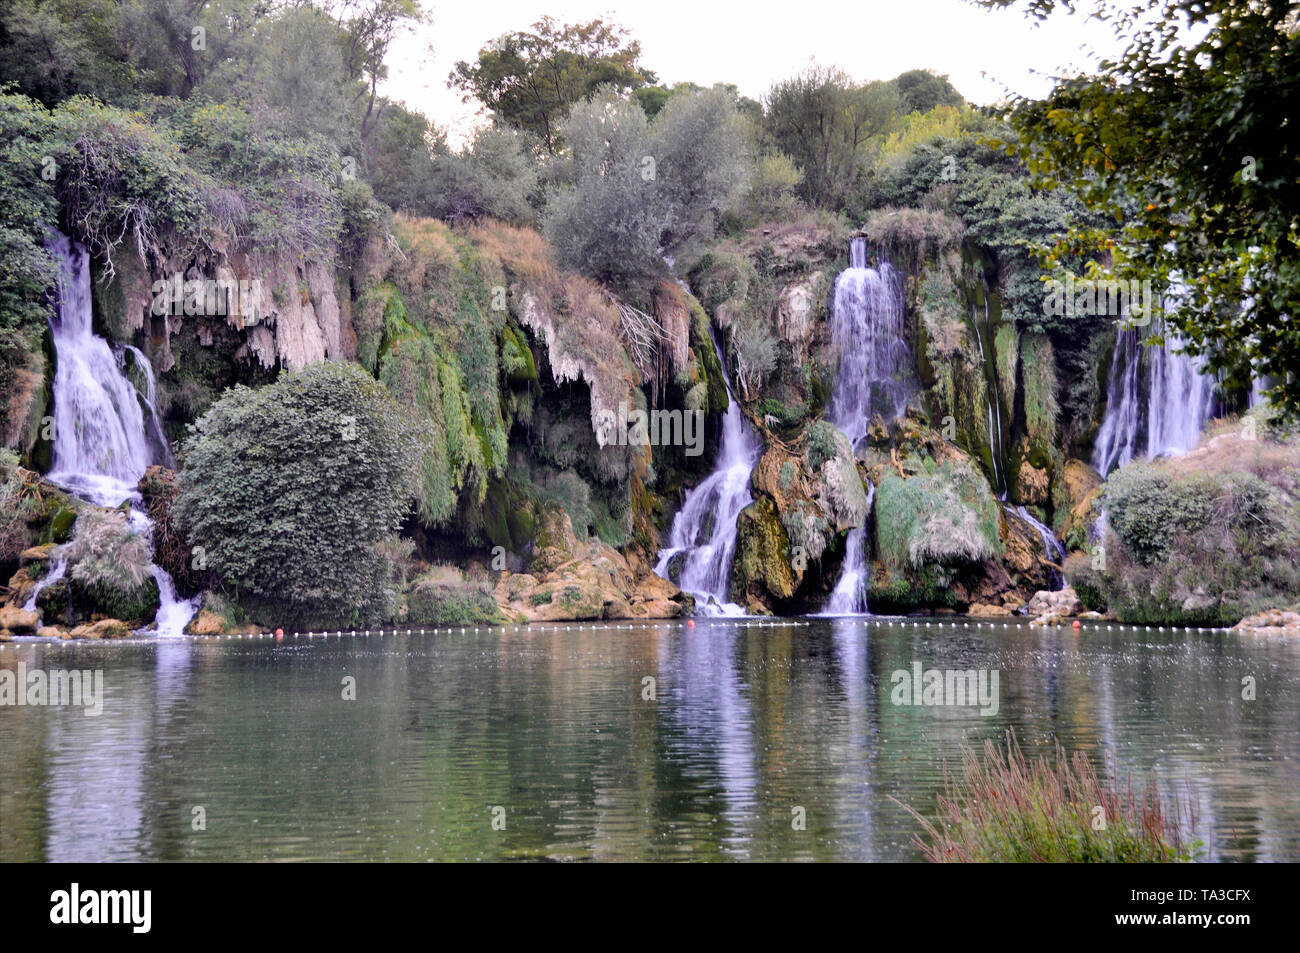 Beautiful Kravica waterfall in Bosnia and Herzegovina - popular swimming and picnic area for tourists. - Stock Image